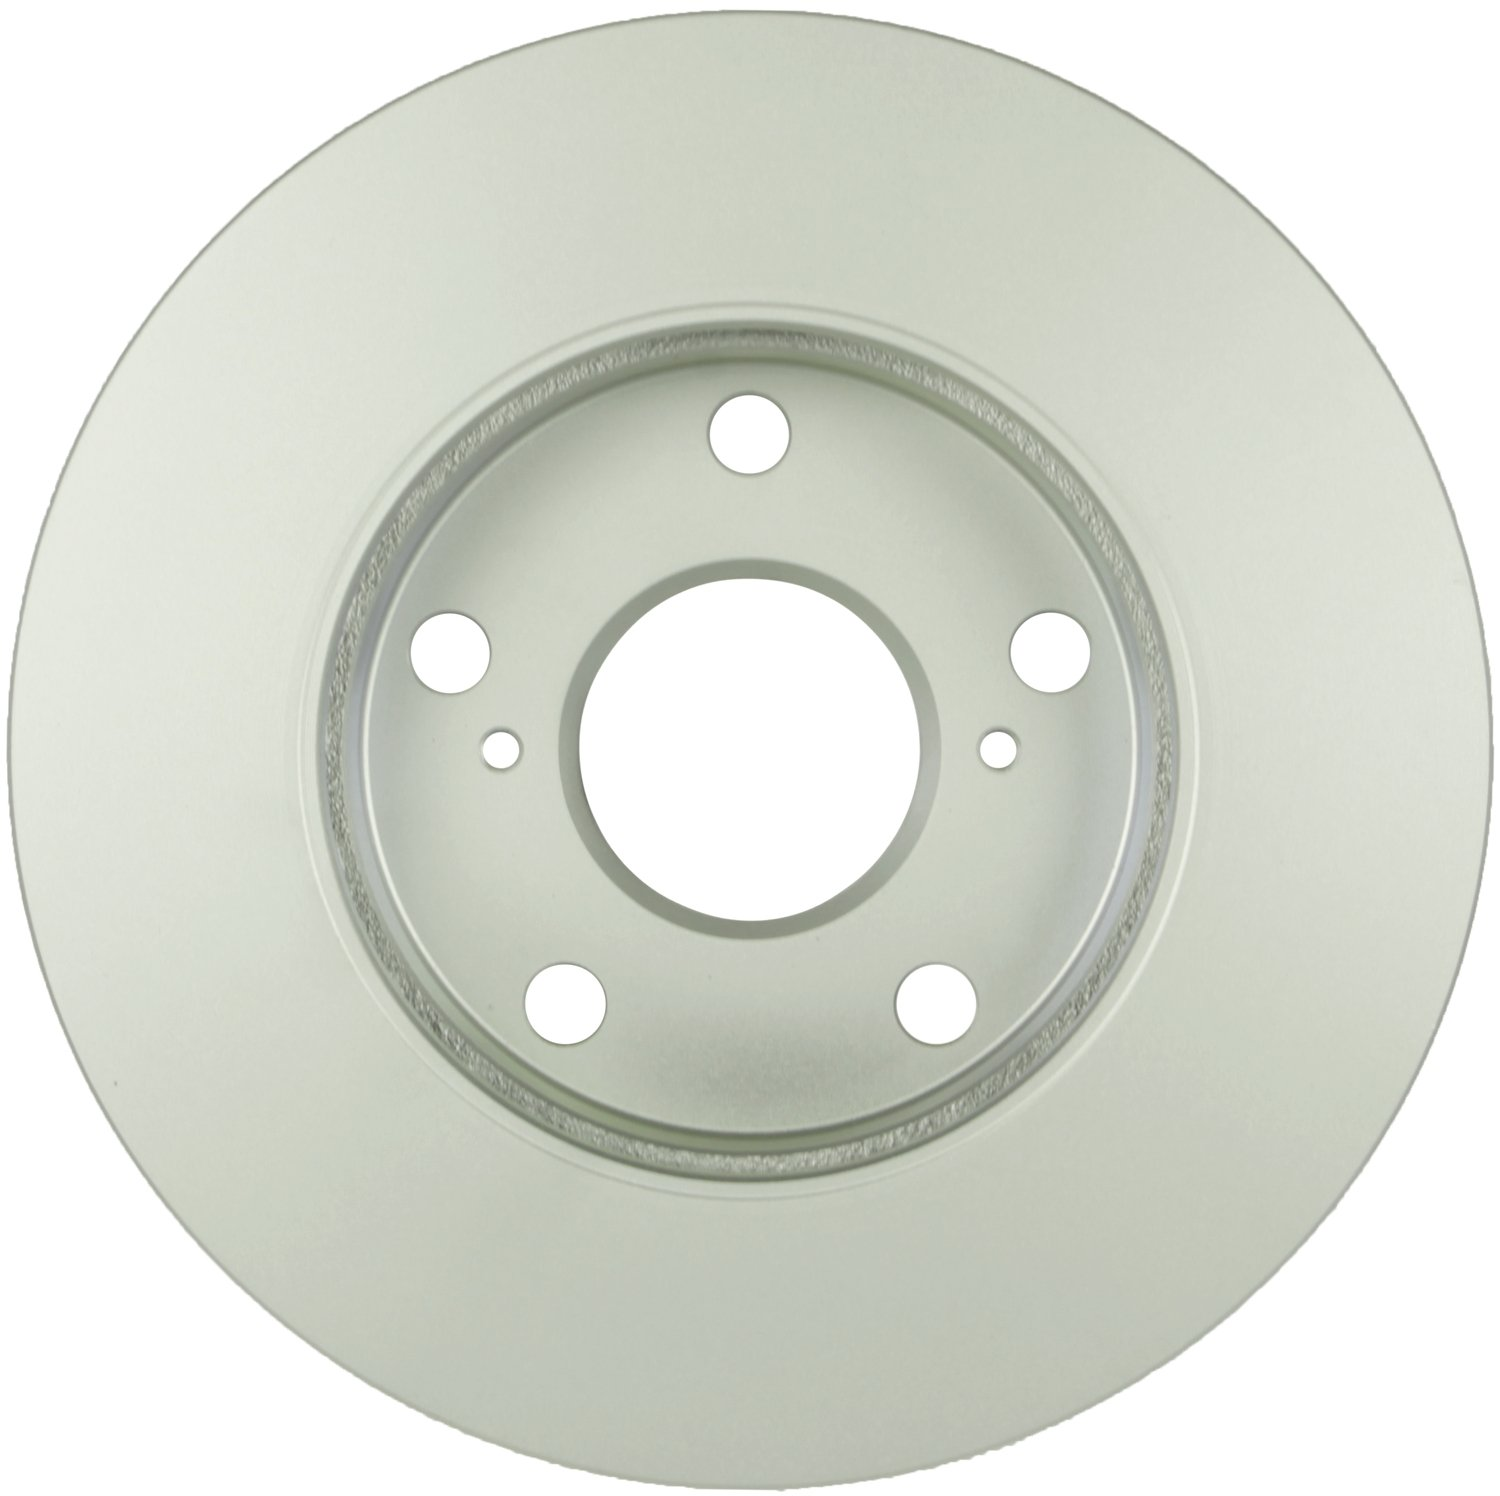 Bosch 50011220 QuietCast Premium Disc Brake Rotor For 1992-2001 Toyota Camry; Front